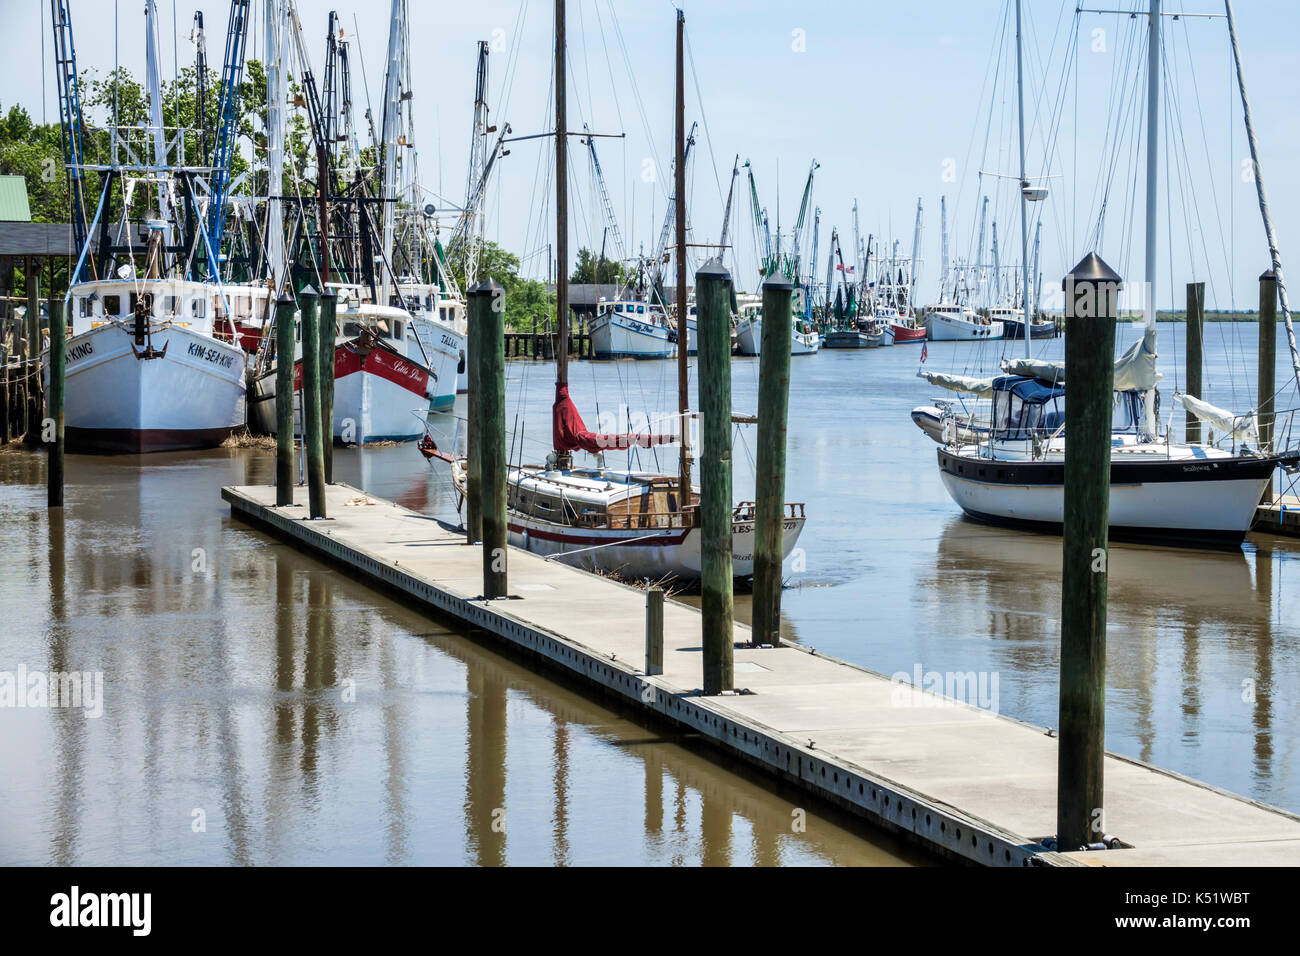 Darien Georgia waterfront commercial fishing shrimping industry fleet boat dock - Stock Image